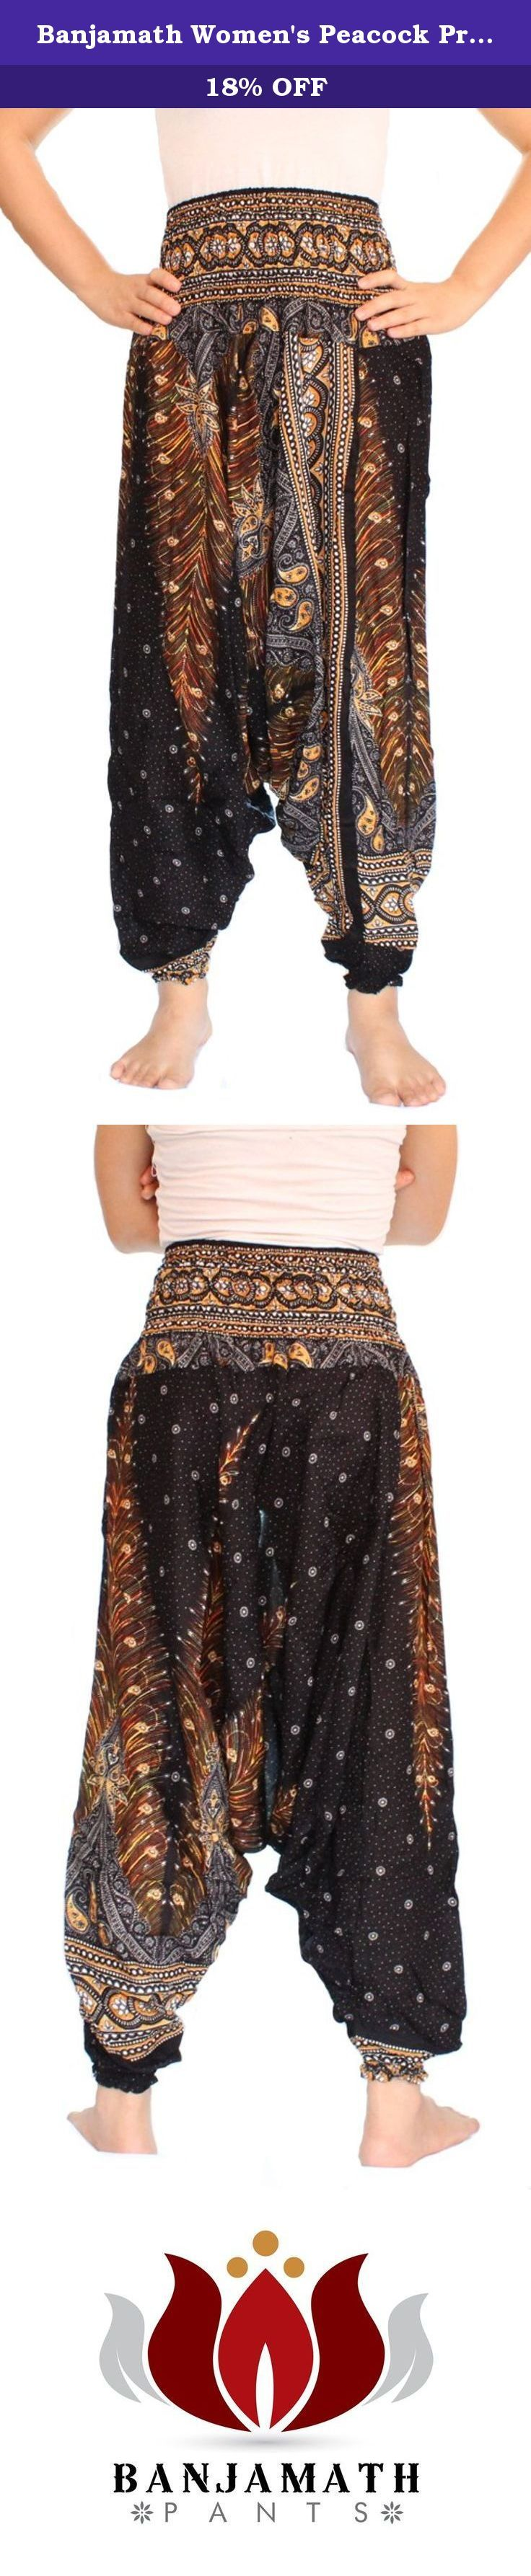 Banjamath Women's Peacock Print Aladdin Harem Hippie Pants Jumpsuit (Black) One Size. These pants are awesome for holiday relaxation,yoga exercise,night wears or ordinary day. They are stylish,comfortable,easy to wear and feel relaxedly. These pant made from rayon fabric.The pants are elastic waist ankle and also one side pocket. . How to care for your Banjamath pants Our Thai Harem Pants are made from quality 100% cotton which makes them extremely comfortable. This means that they need…